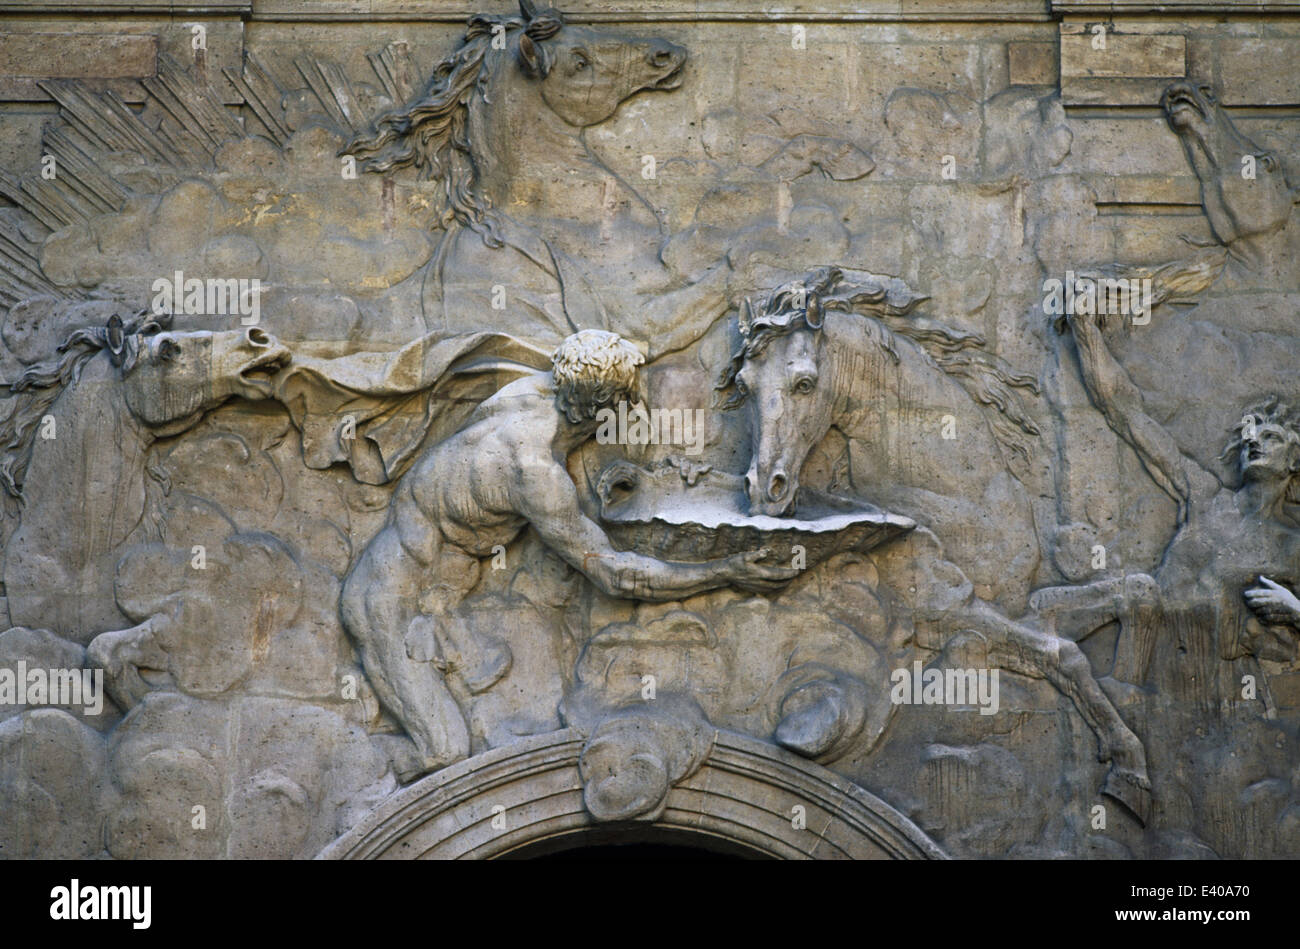 The Horses of the Sun by Robert Le Lorrain on the stable of the hôtel de Rohan in Paris - Stock Image